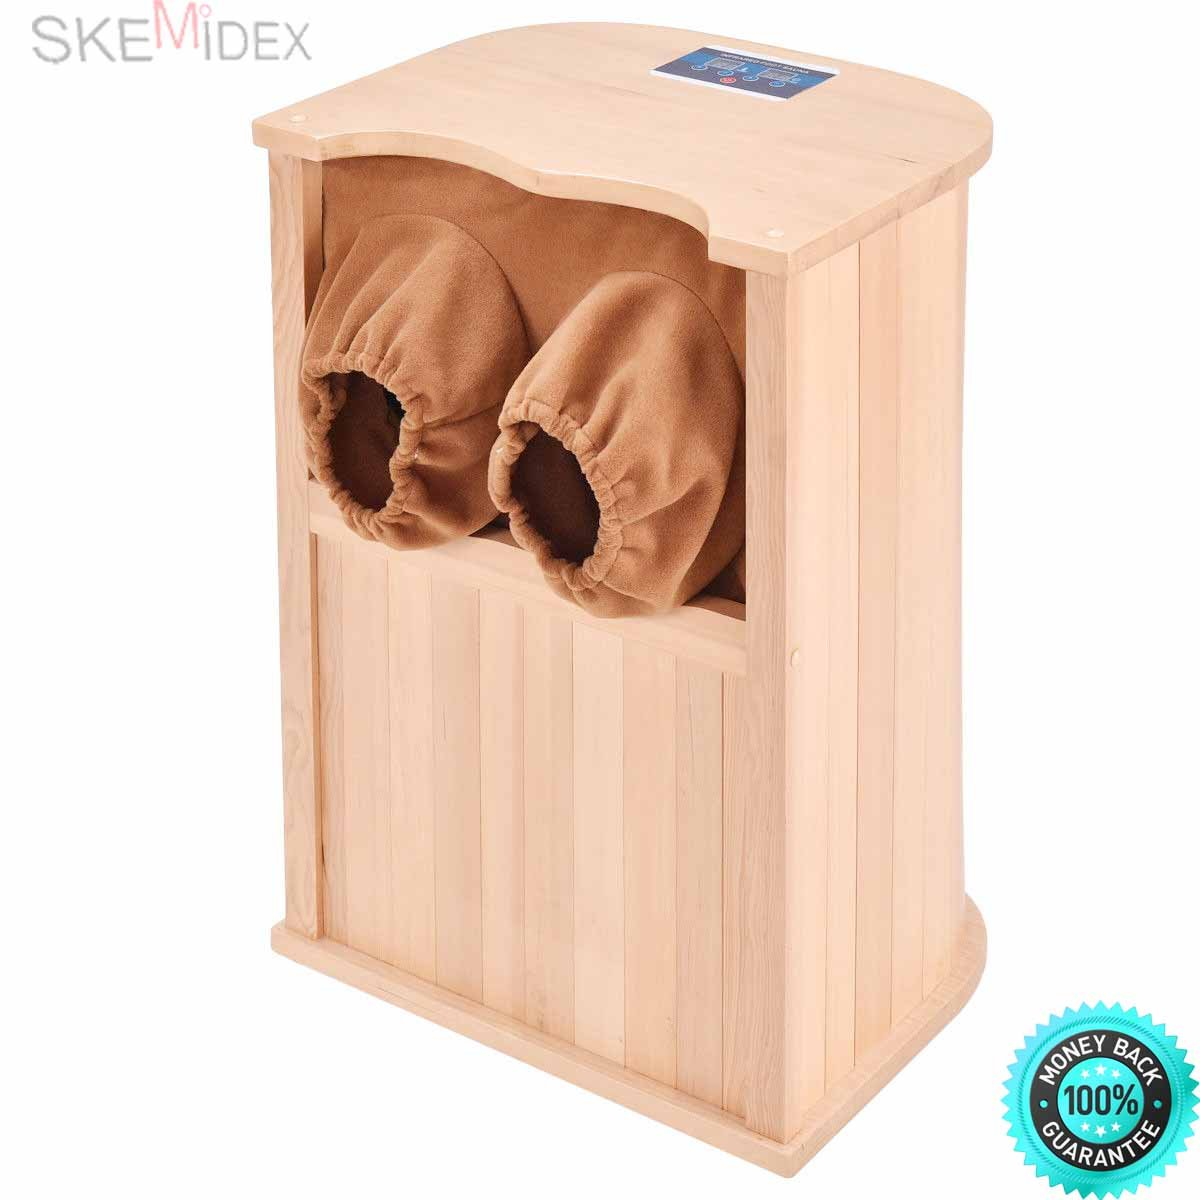 SKEMiDEX---Infrared Wooden Foot Sauna Dry Bath Health Spa & Therapy w/ Carbon Fiber Heaters nstead of traditional sauna methods, this infrared foot sauna uses the power of tourmaline stones